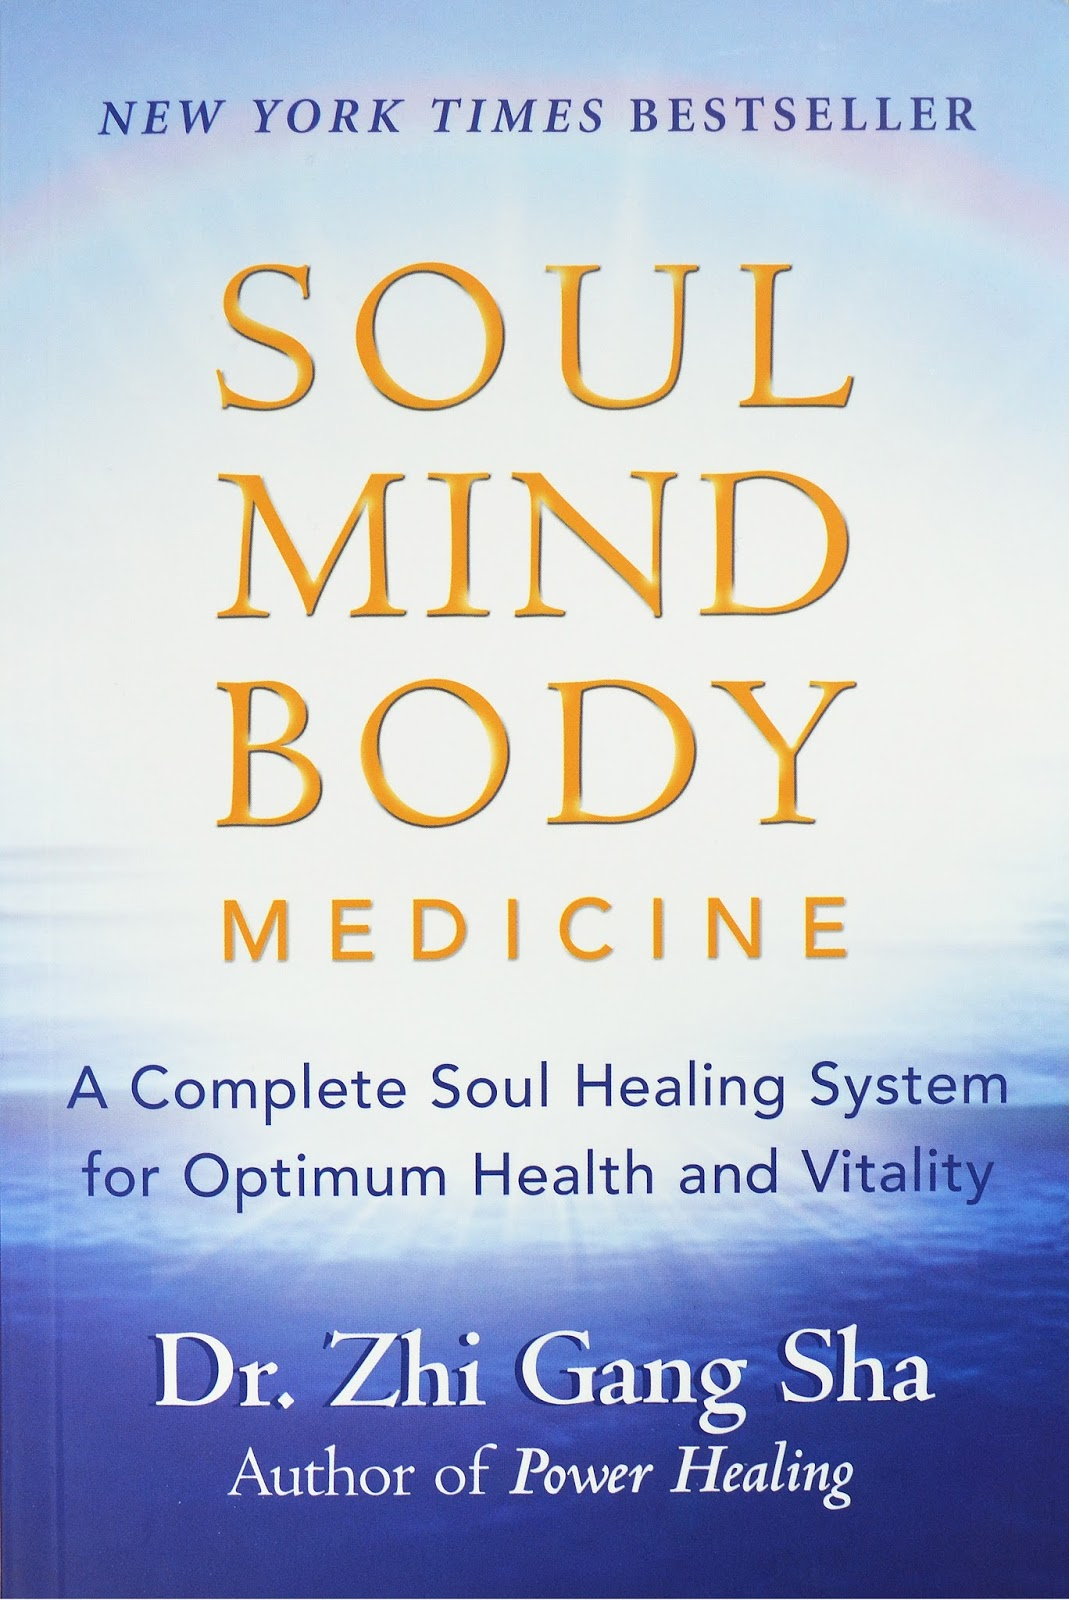 mind body medicine What is mind body medicine it refers both to a general approach to human health and healing and a medical sub-specialty and special attention is given to the mind, the emotions, and the spiritual being of the patients.